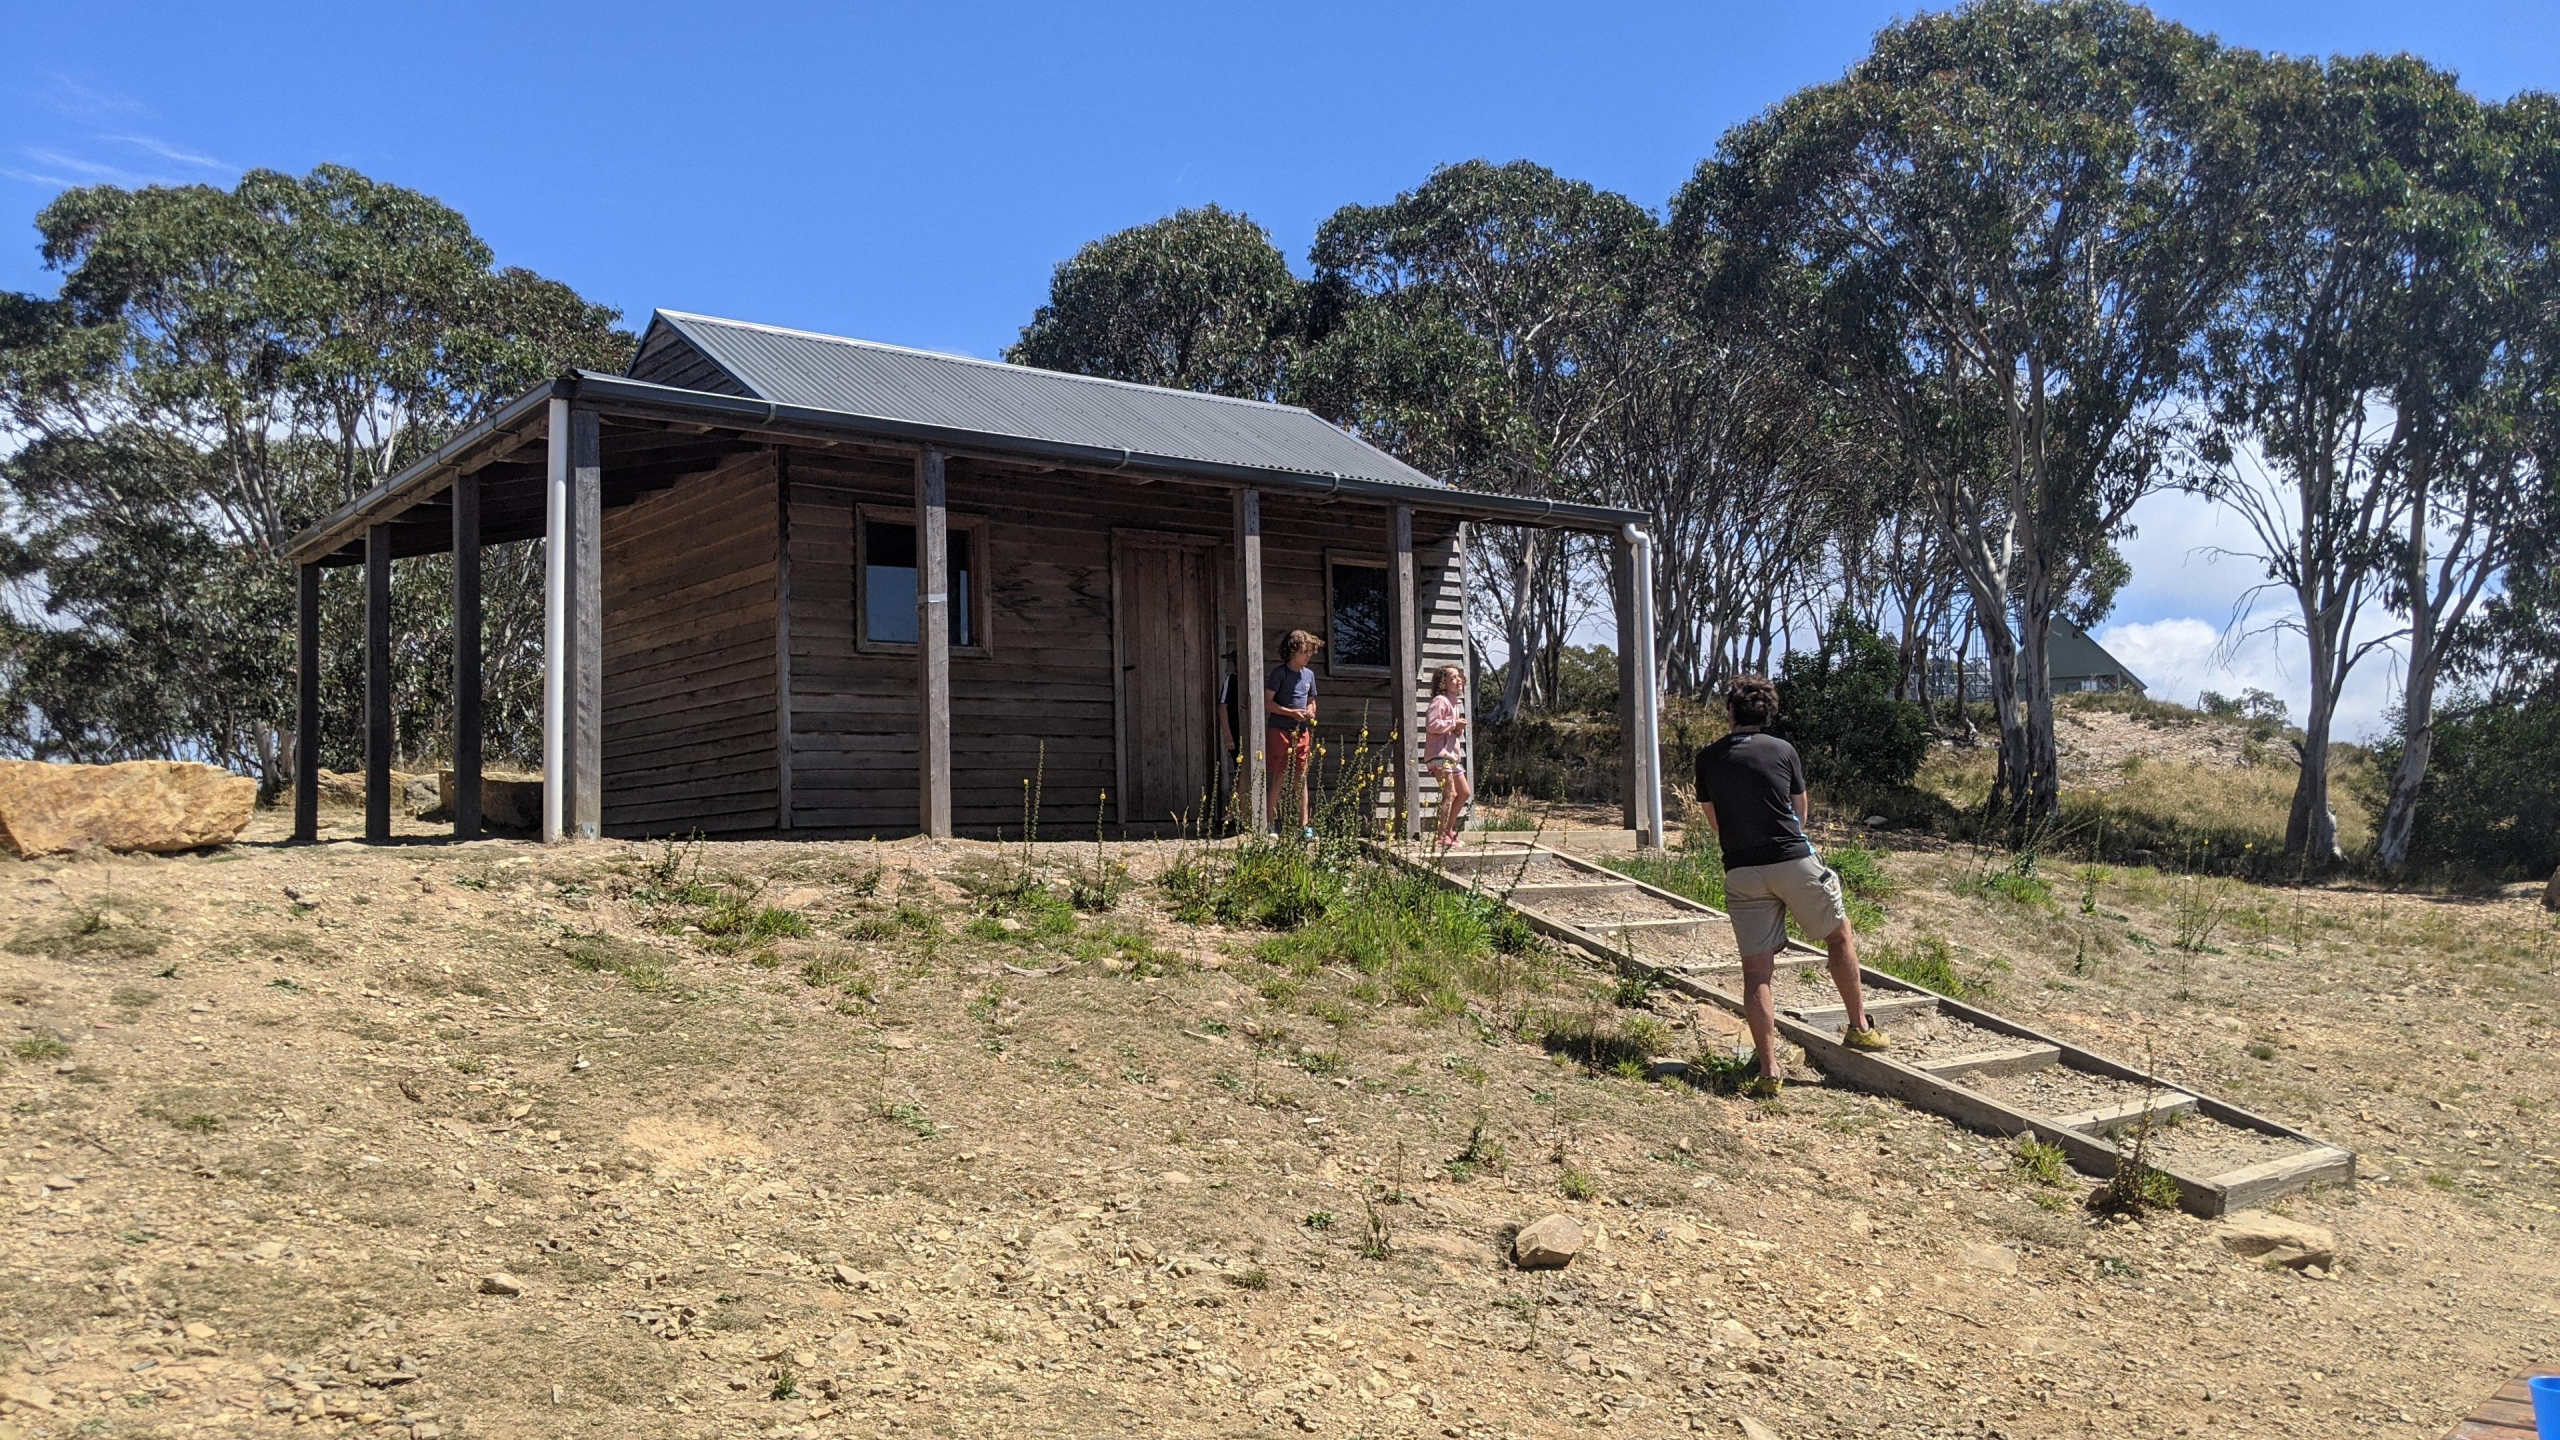 Mt Terrible Hut. Hill Tribe Travels visited Mt Terrible on 4wd tracks from Jamieson Caravan Park